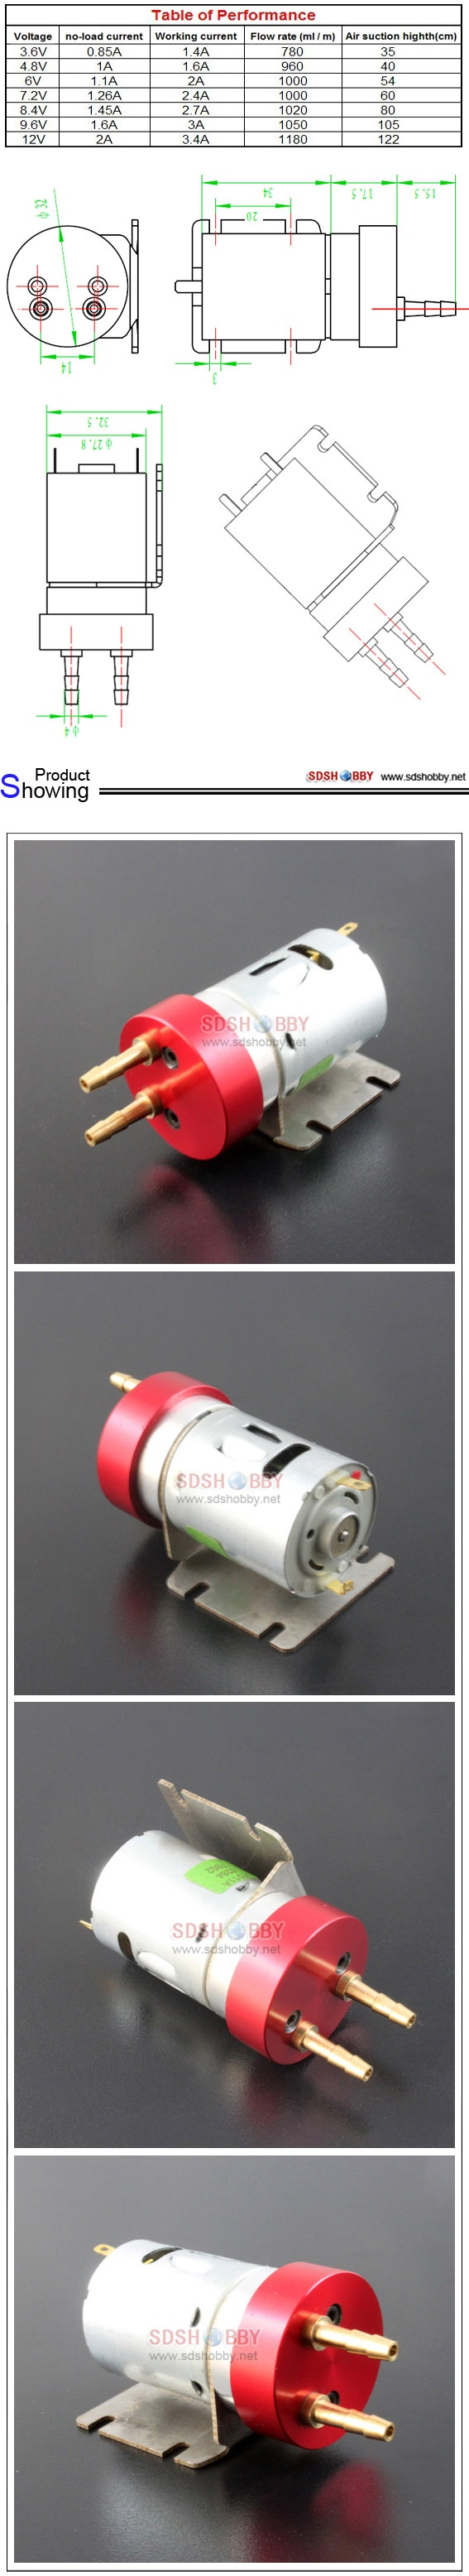 New Design DIY Electric metal gear pump for smoke system (Whole metal)